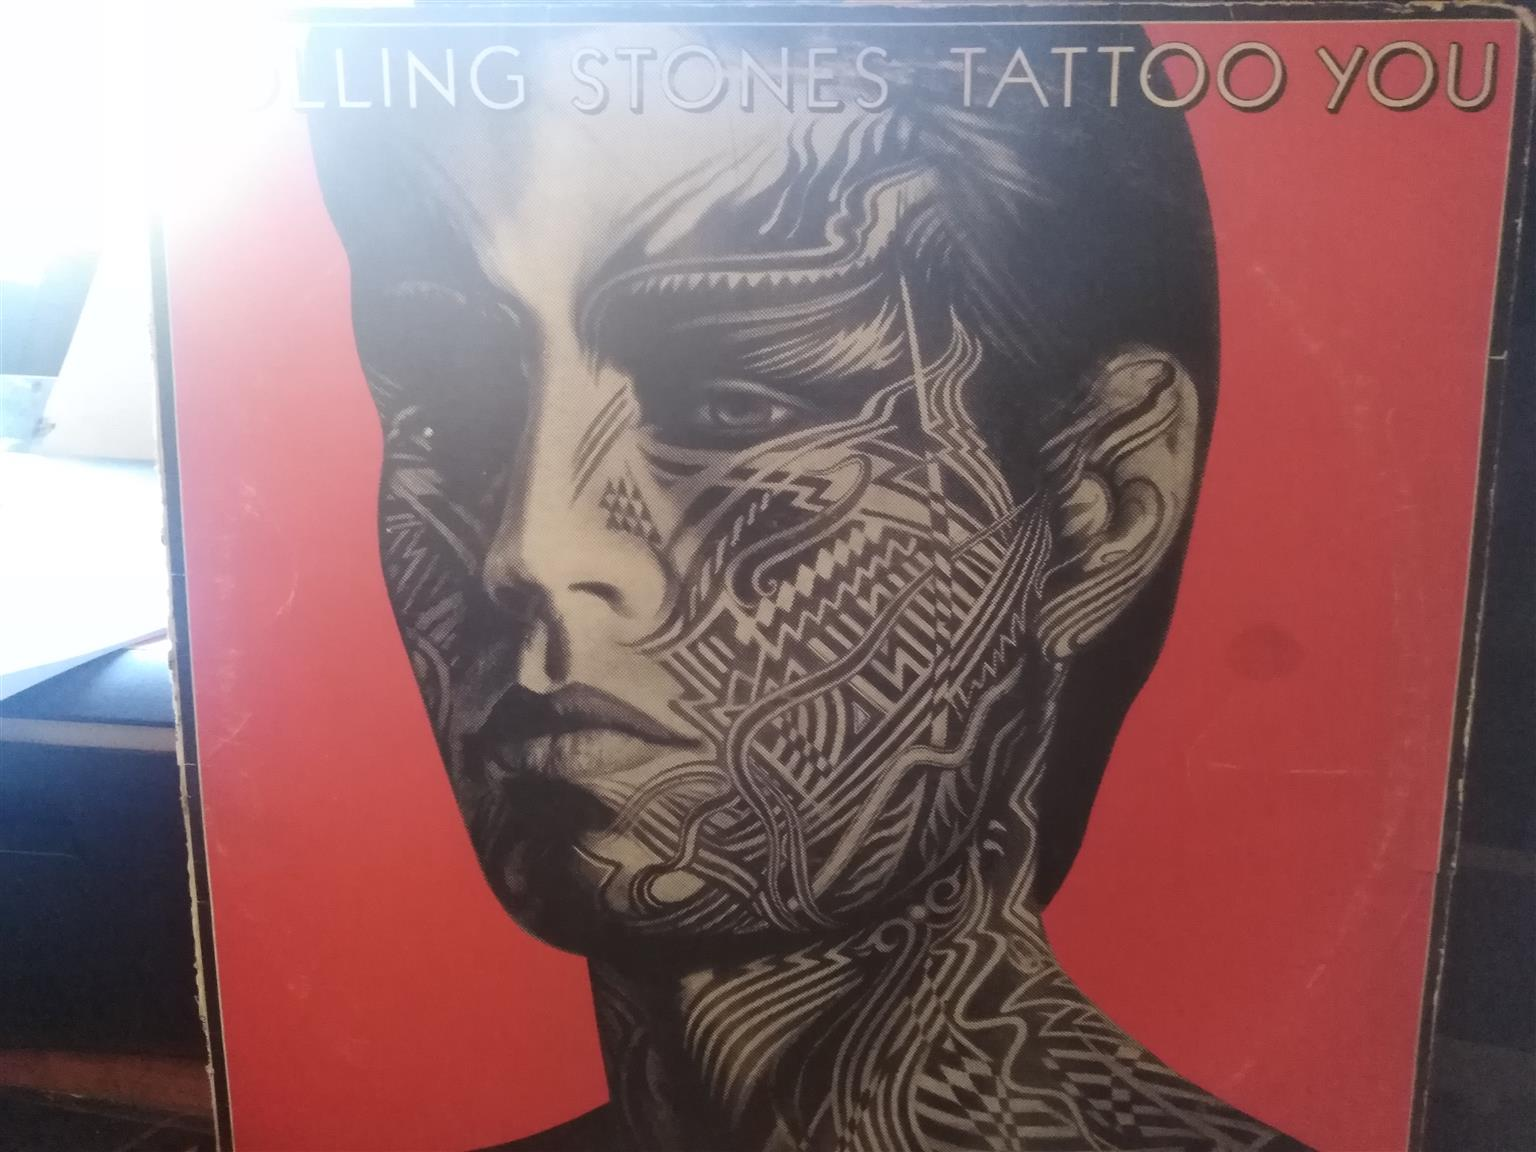 Rolling Stones Tattoo You Lp